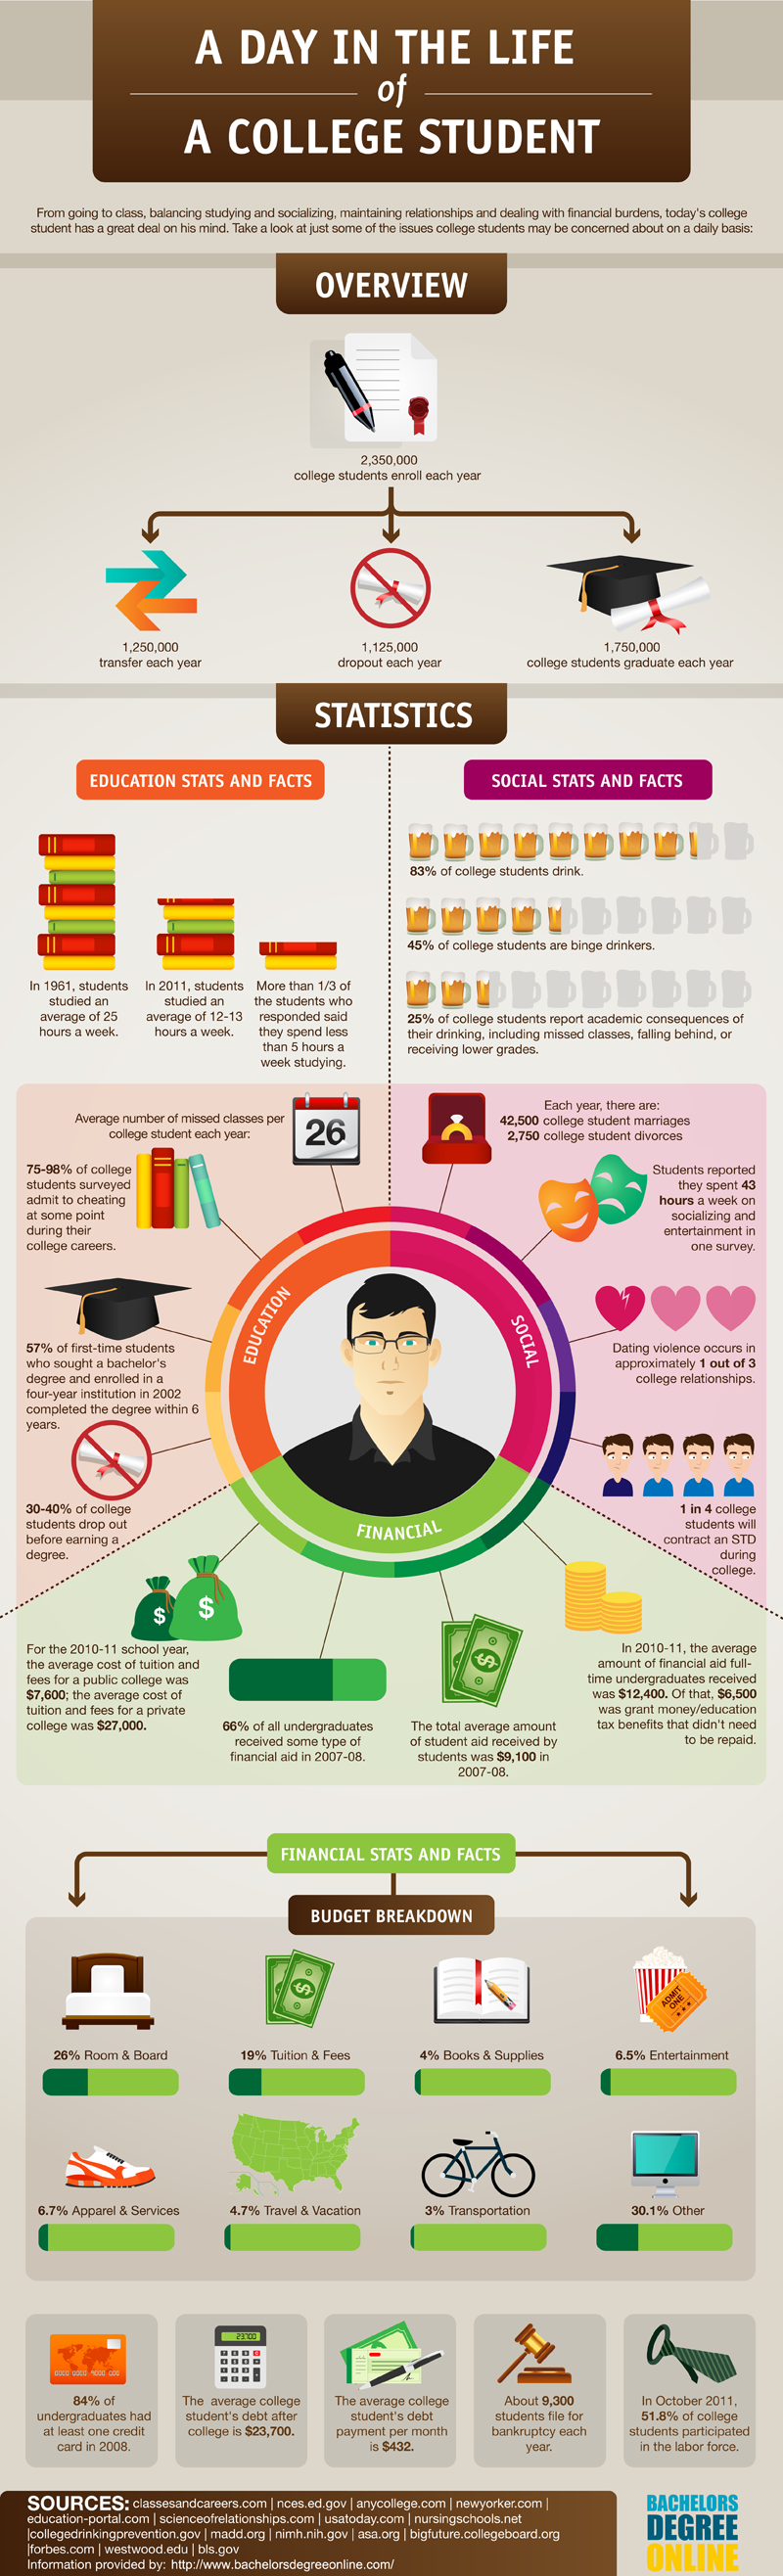 A-Day-In-The-Life-Of-A-College-Student-infographic